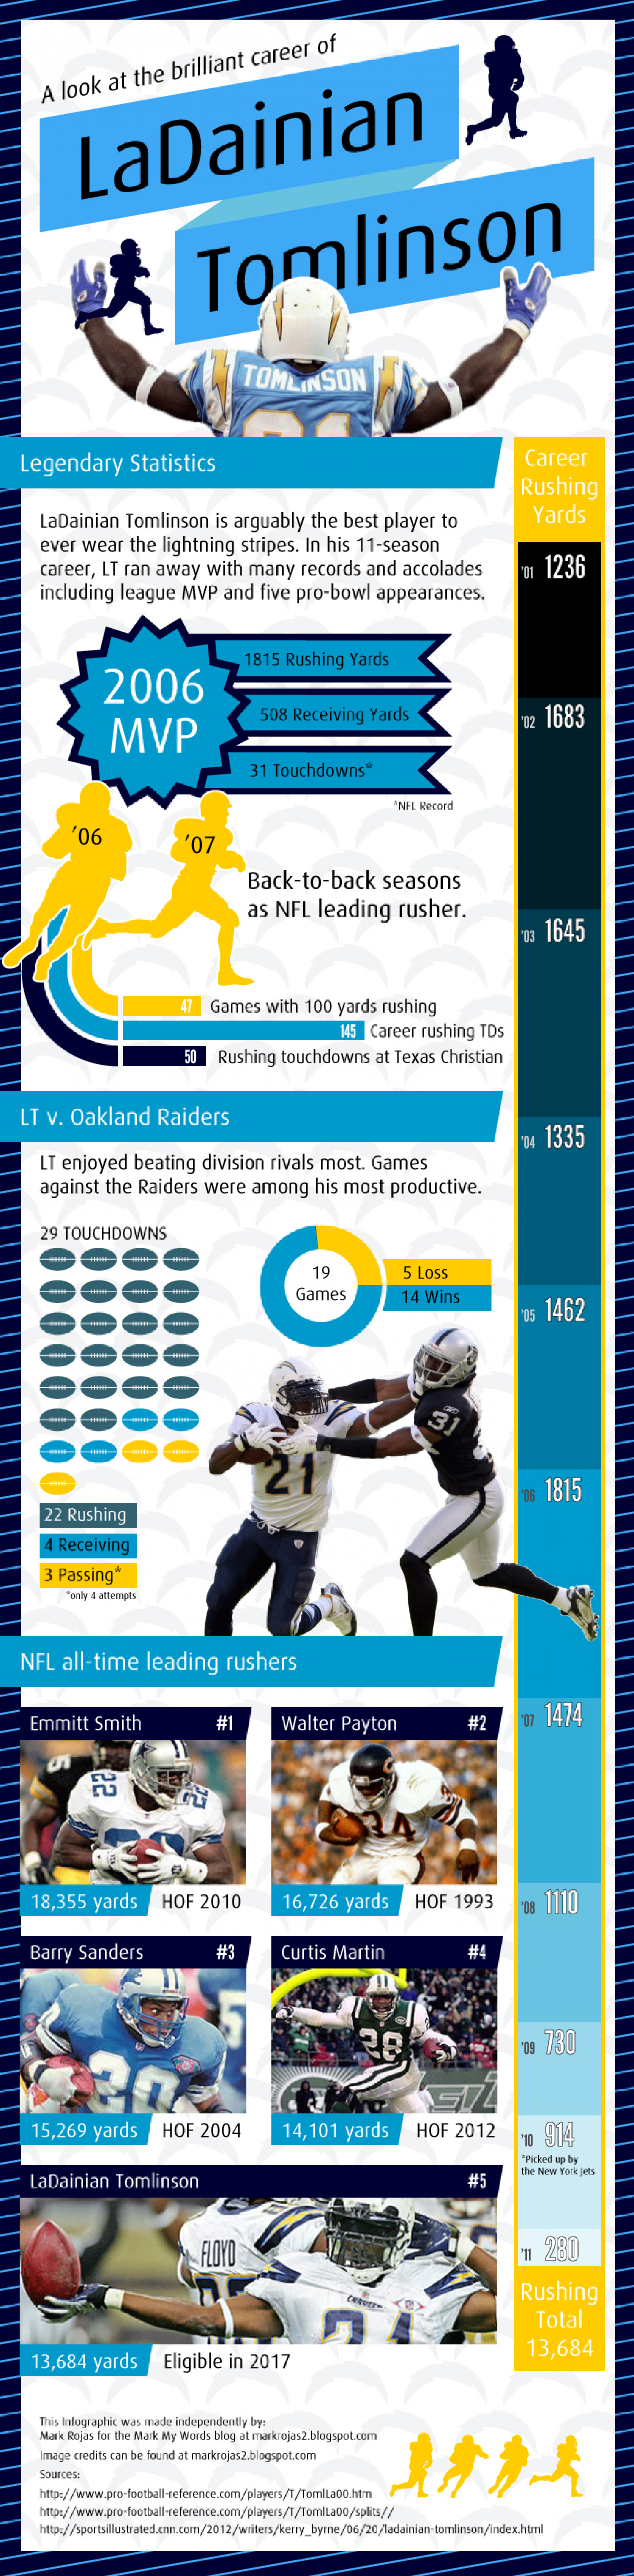 LaDainian Tomlinson Infographic Infographic